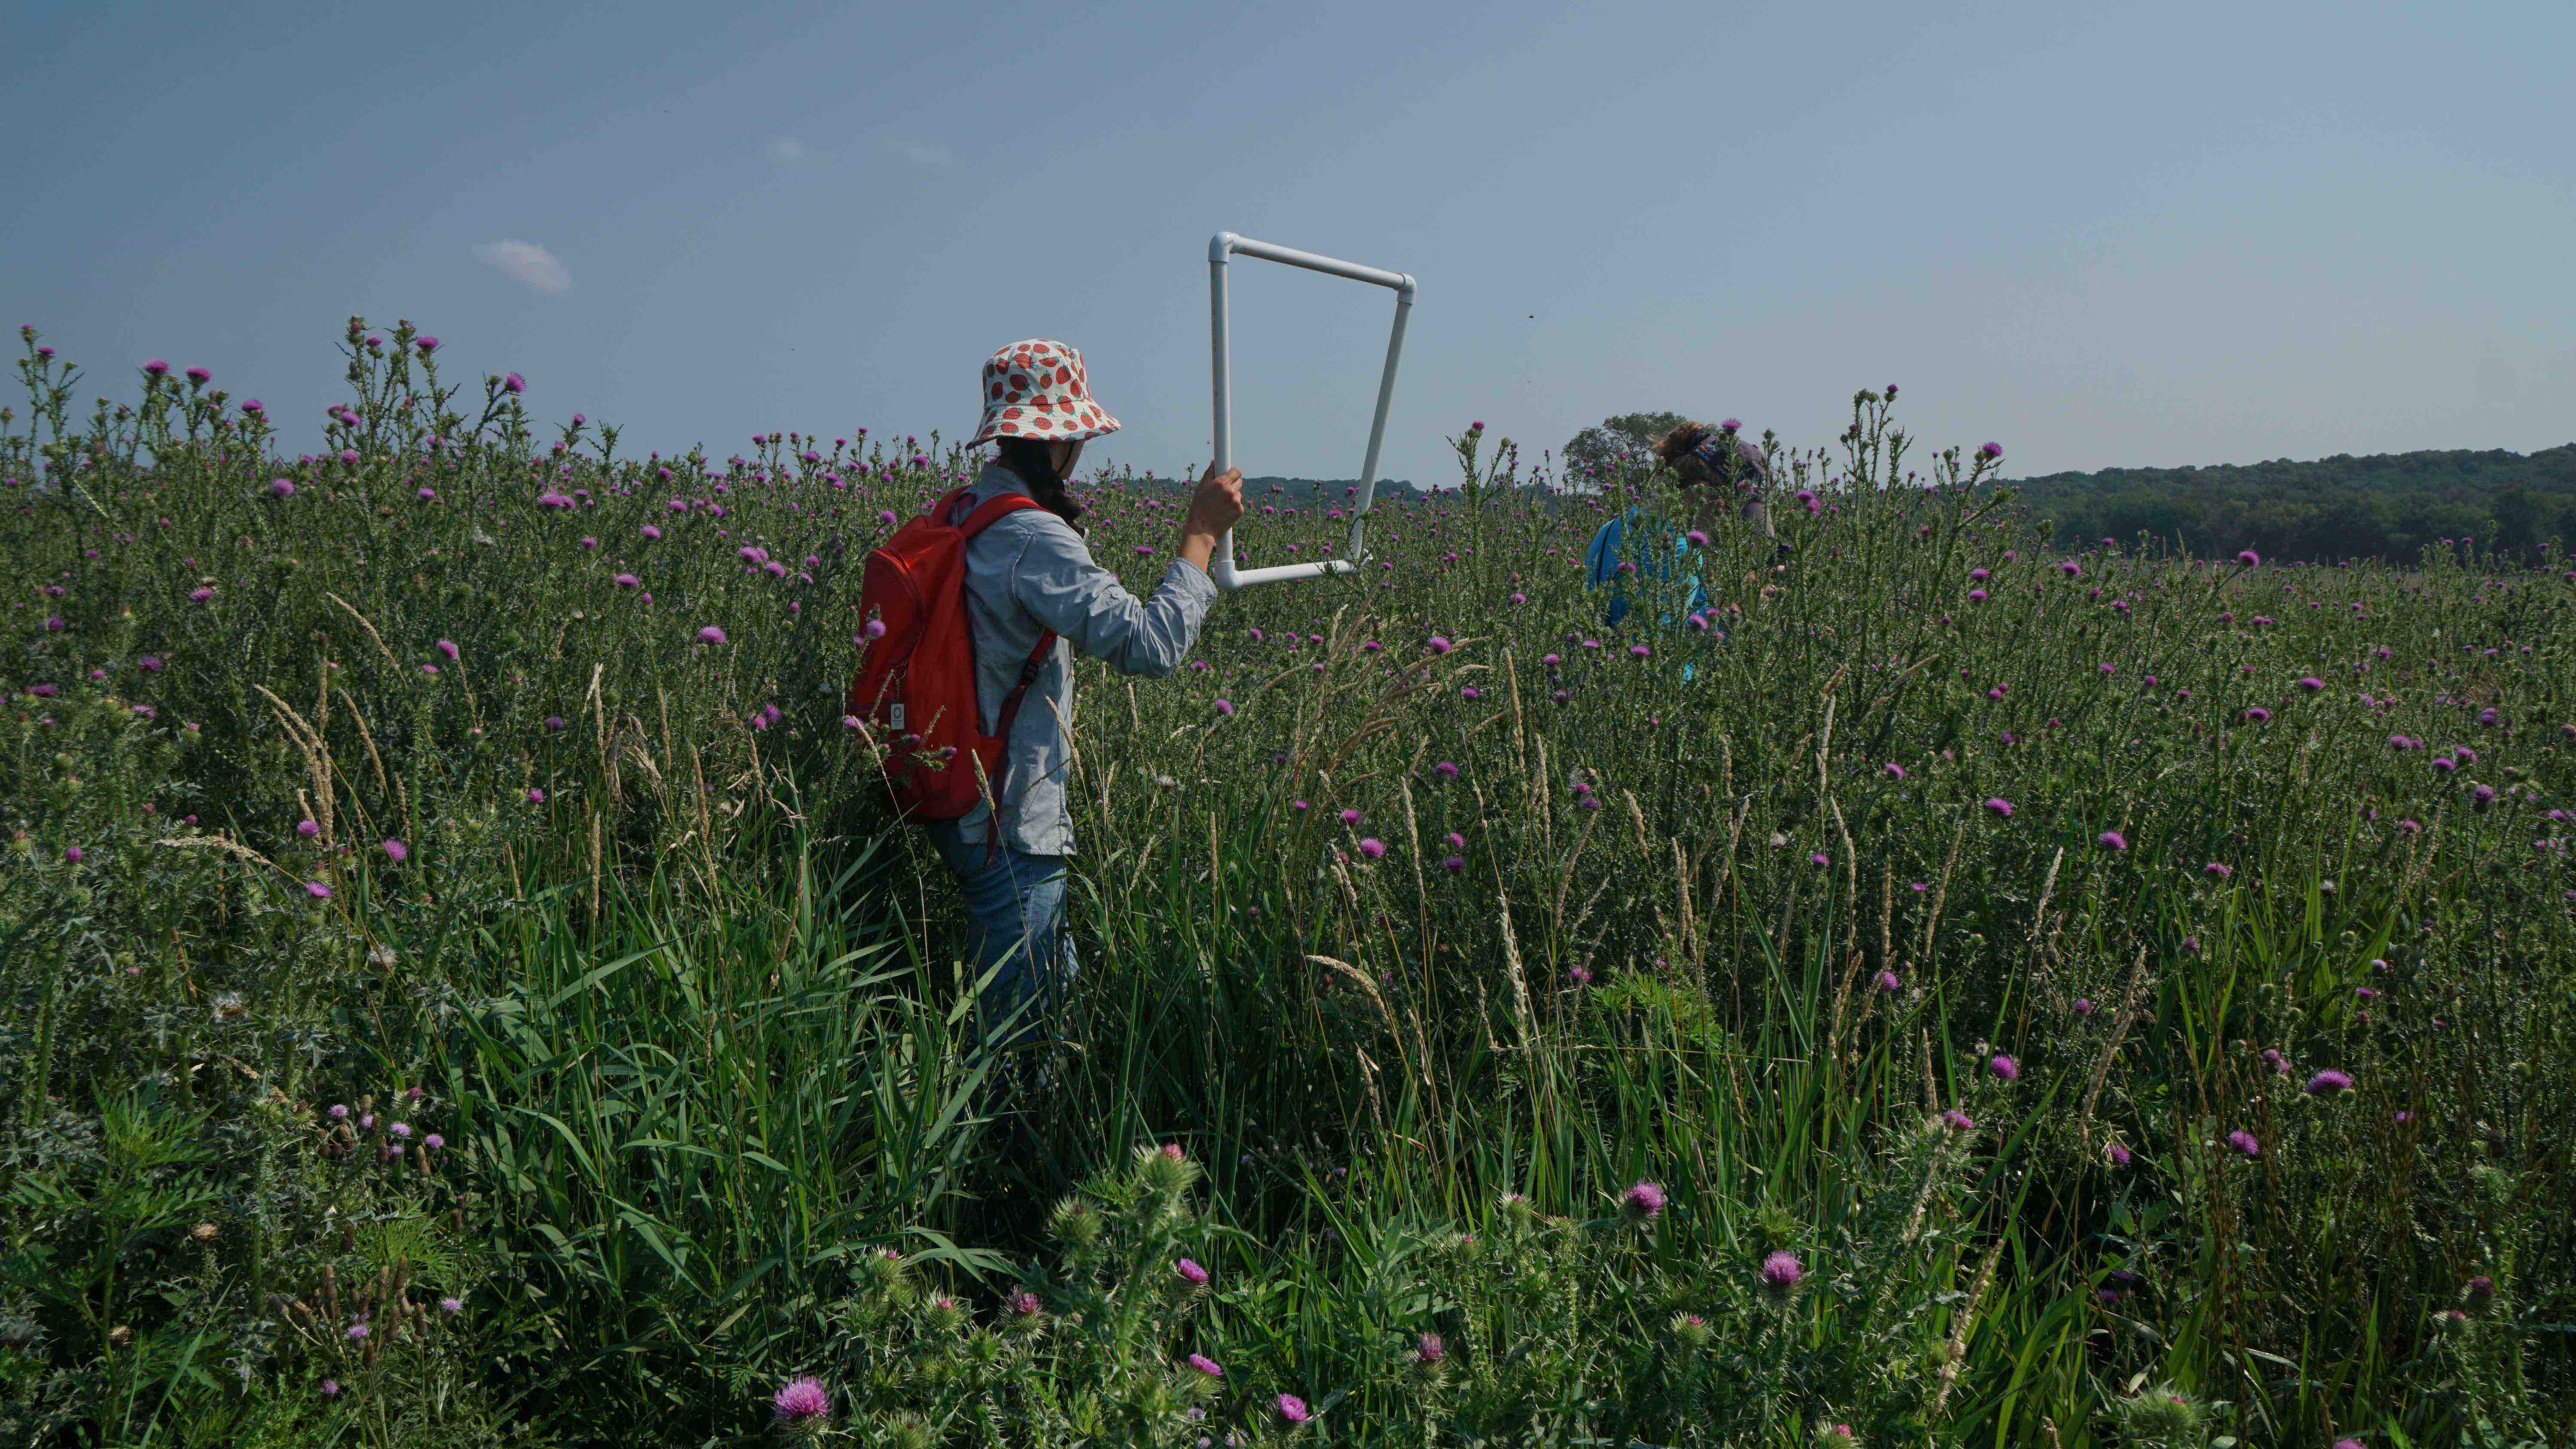 A photograph shows a person standing in a prairie fen, holding up a square frame made of pvc pipe. The person is wearing a red backpack, a blue shirt and pants, and a white bucket hat with strawberries printed on it. The PVC pipe frame is about 1' square, and the person holds it up with one tan hand. The frame contains a portion of the horizon. Another figure stands further away, their blue shirt obscured by the grasses that dwarf their height. The sky is clear and it is a sunny day.